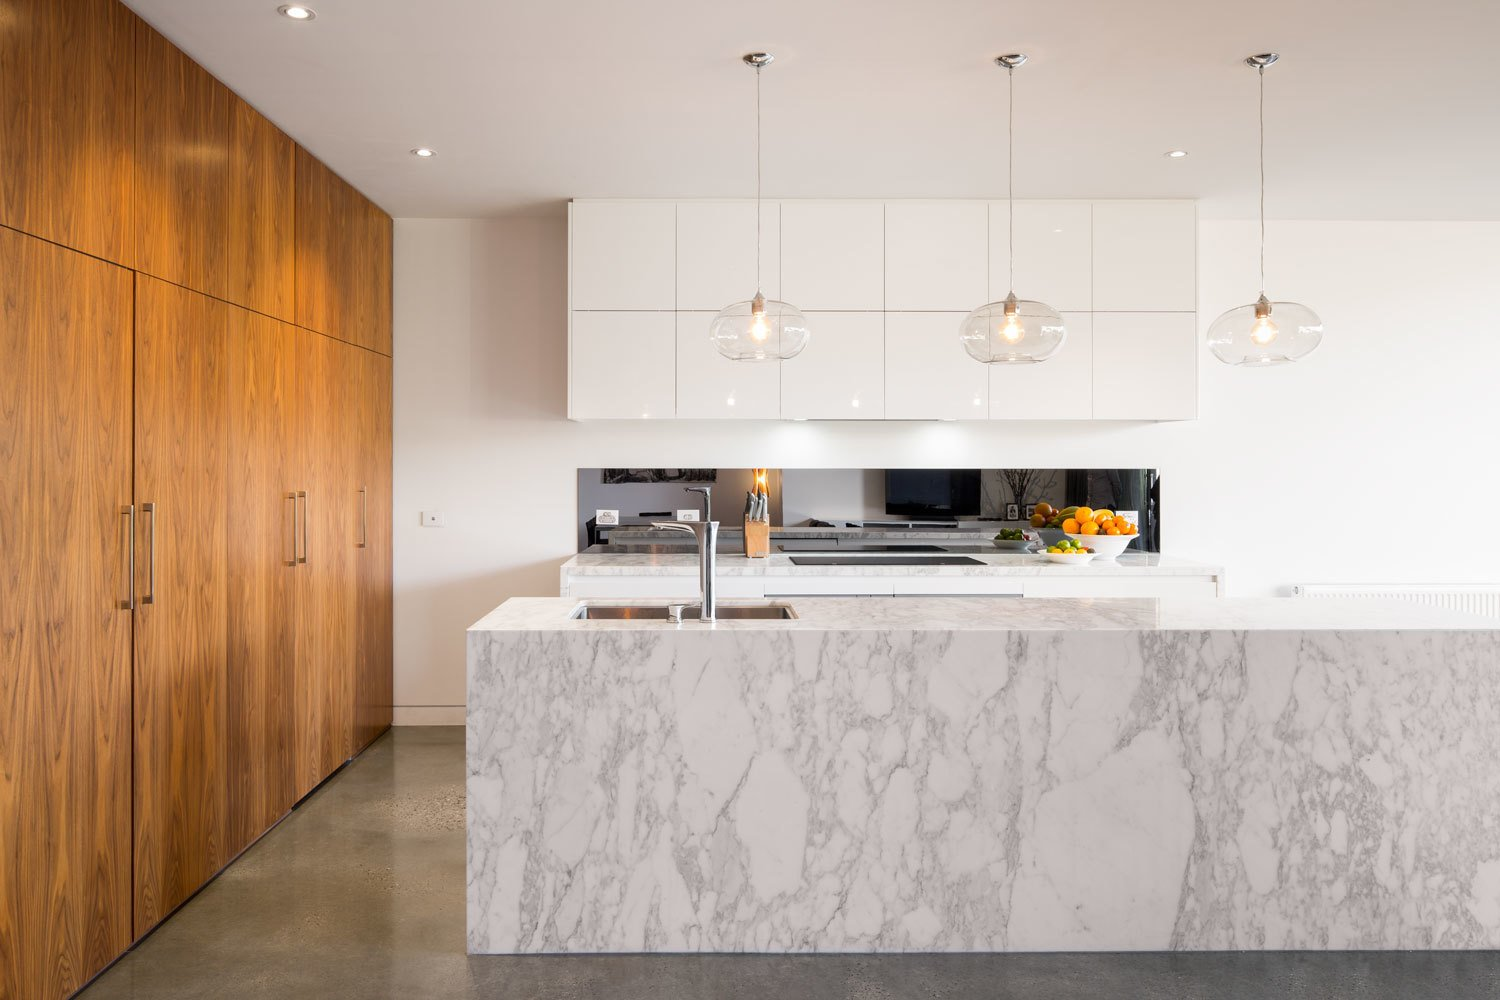 Kitchen, Marble Counter, White Cabinet, Concrete Floor, Wood Cabinet, Pendant Lighting, Undermount Sink, Recessed Lighting, and Cooktops The entire living and dining space features tough polished concrete floors. The architects intentionally contrasted the darker concrete and veneered pantry against the neutral white walls and marble. This color play runs through the renovated areas.  Photo 18 of 21 in Mad About Marble: 20 Kitchens and Bathrooms from A Breezy Modern Addition Opens Up a Historic Melbourne Home